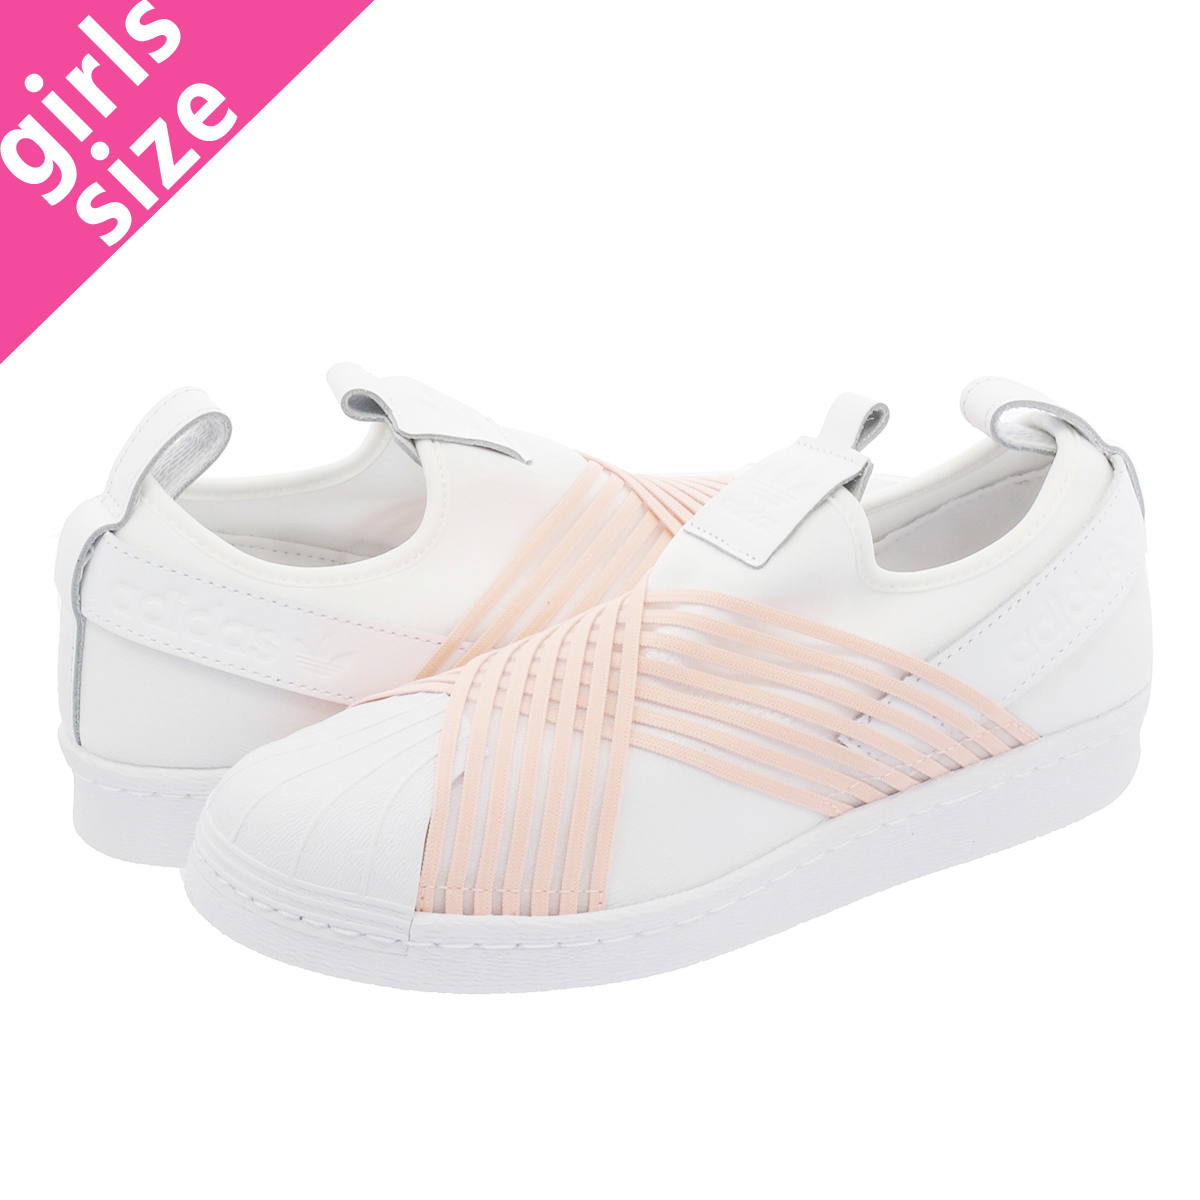 adidas SUPERSTAR Slip On W Adidas superstar slip ons women RUNNING WHITECLEAR ORANGE d96704